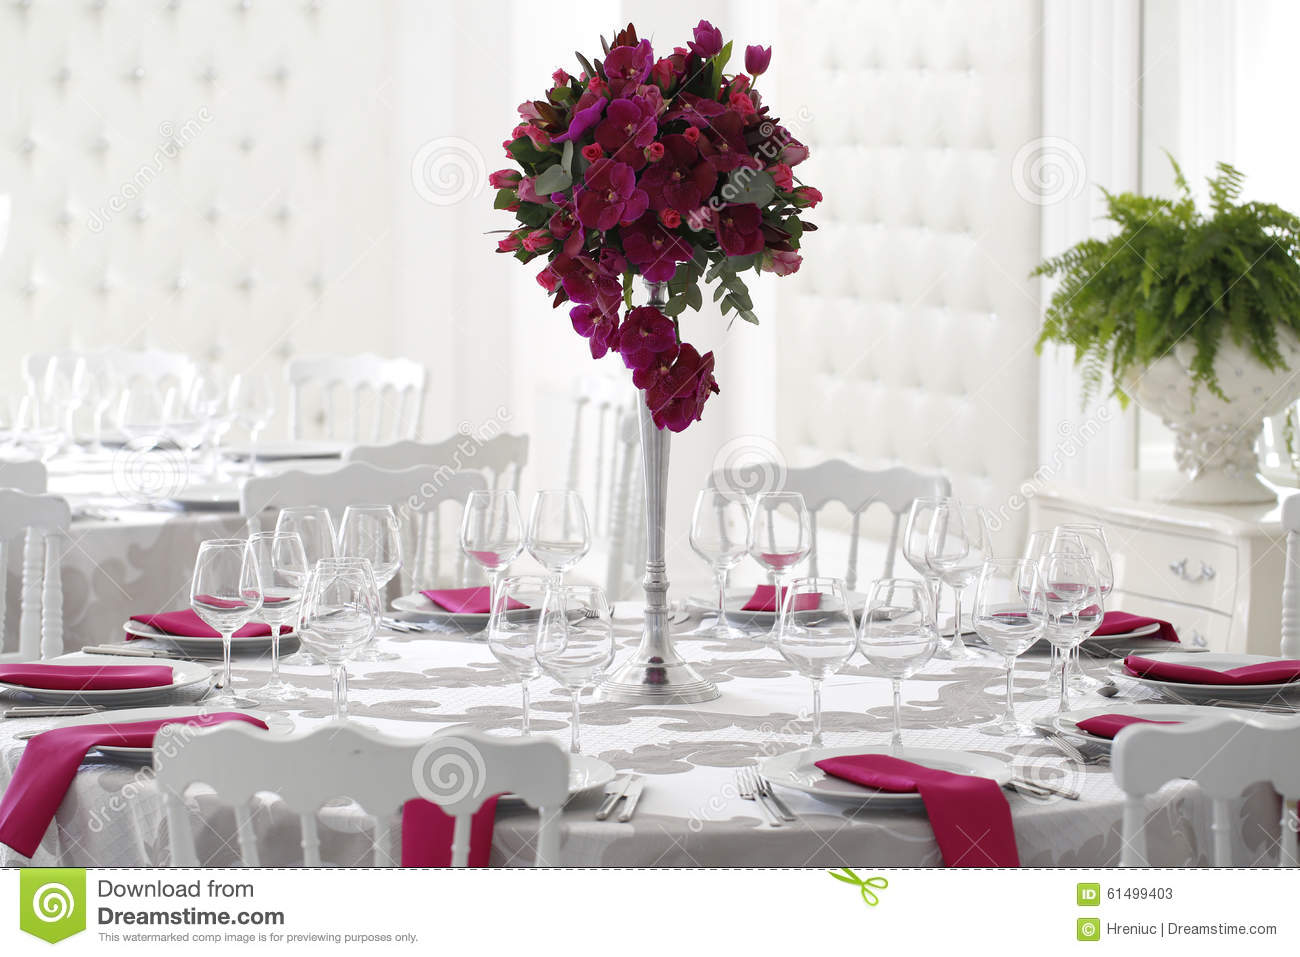 belle d coration de bouquet de fleur sur la table de mariage photo stock image 61499403. Black Bedroom Furniture Sets. Home Design Ideas